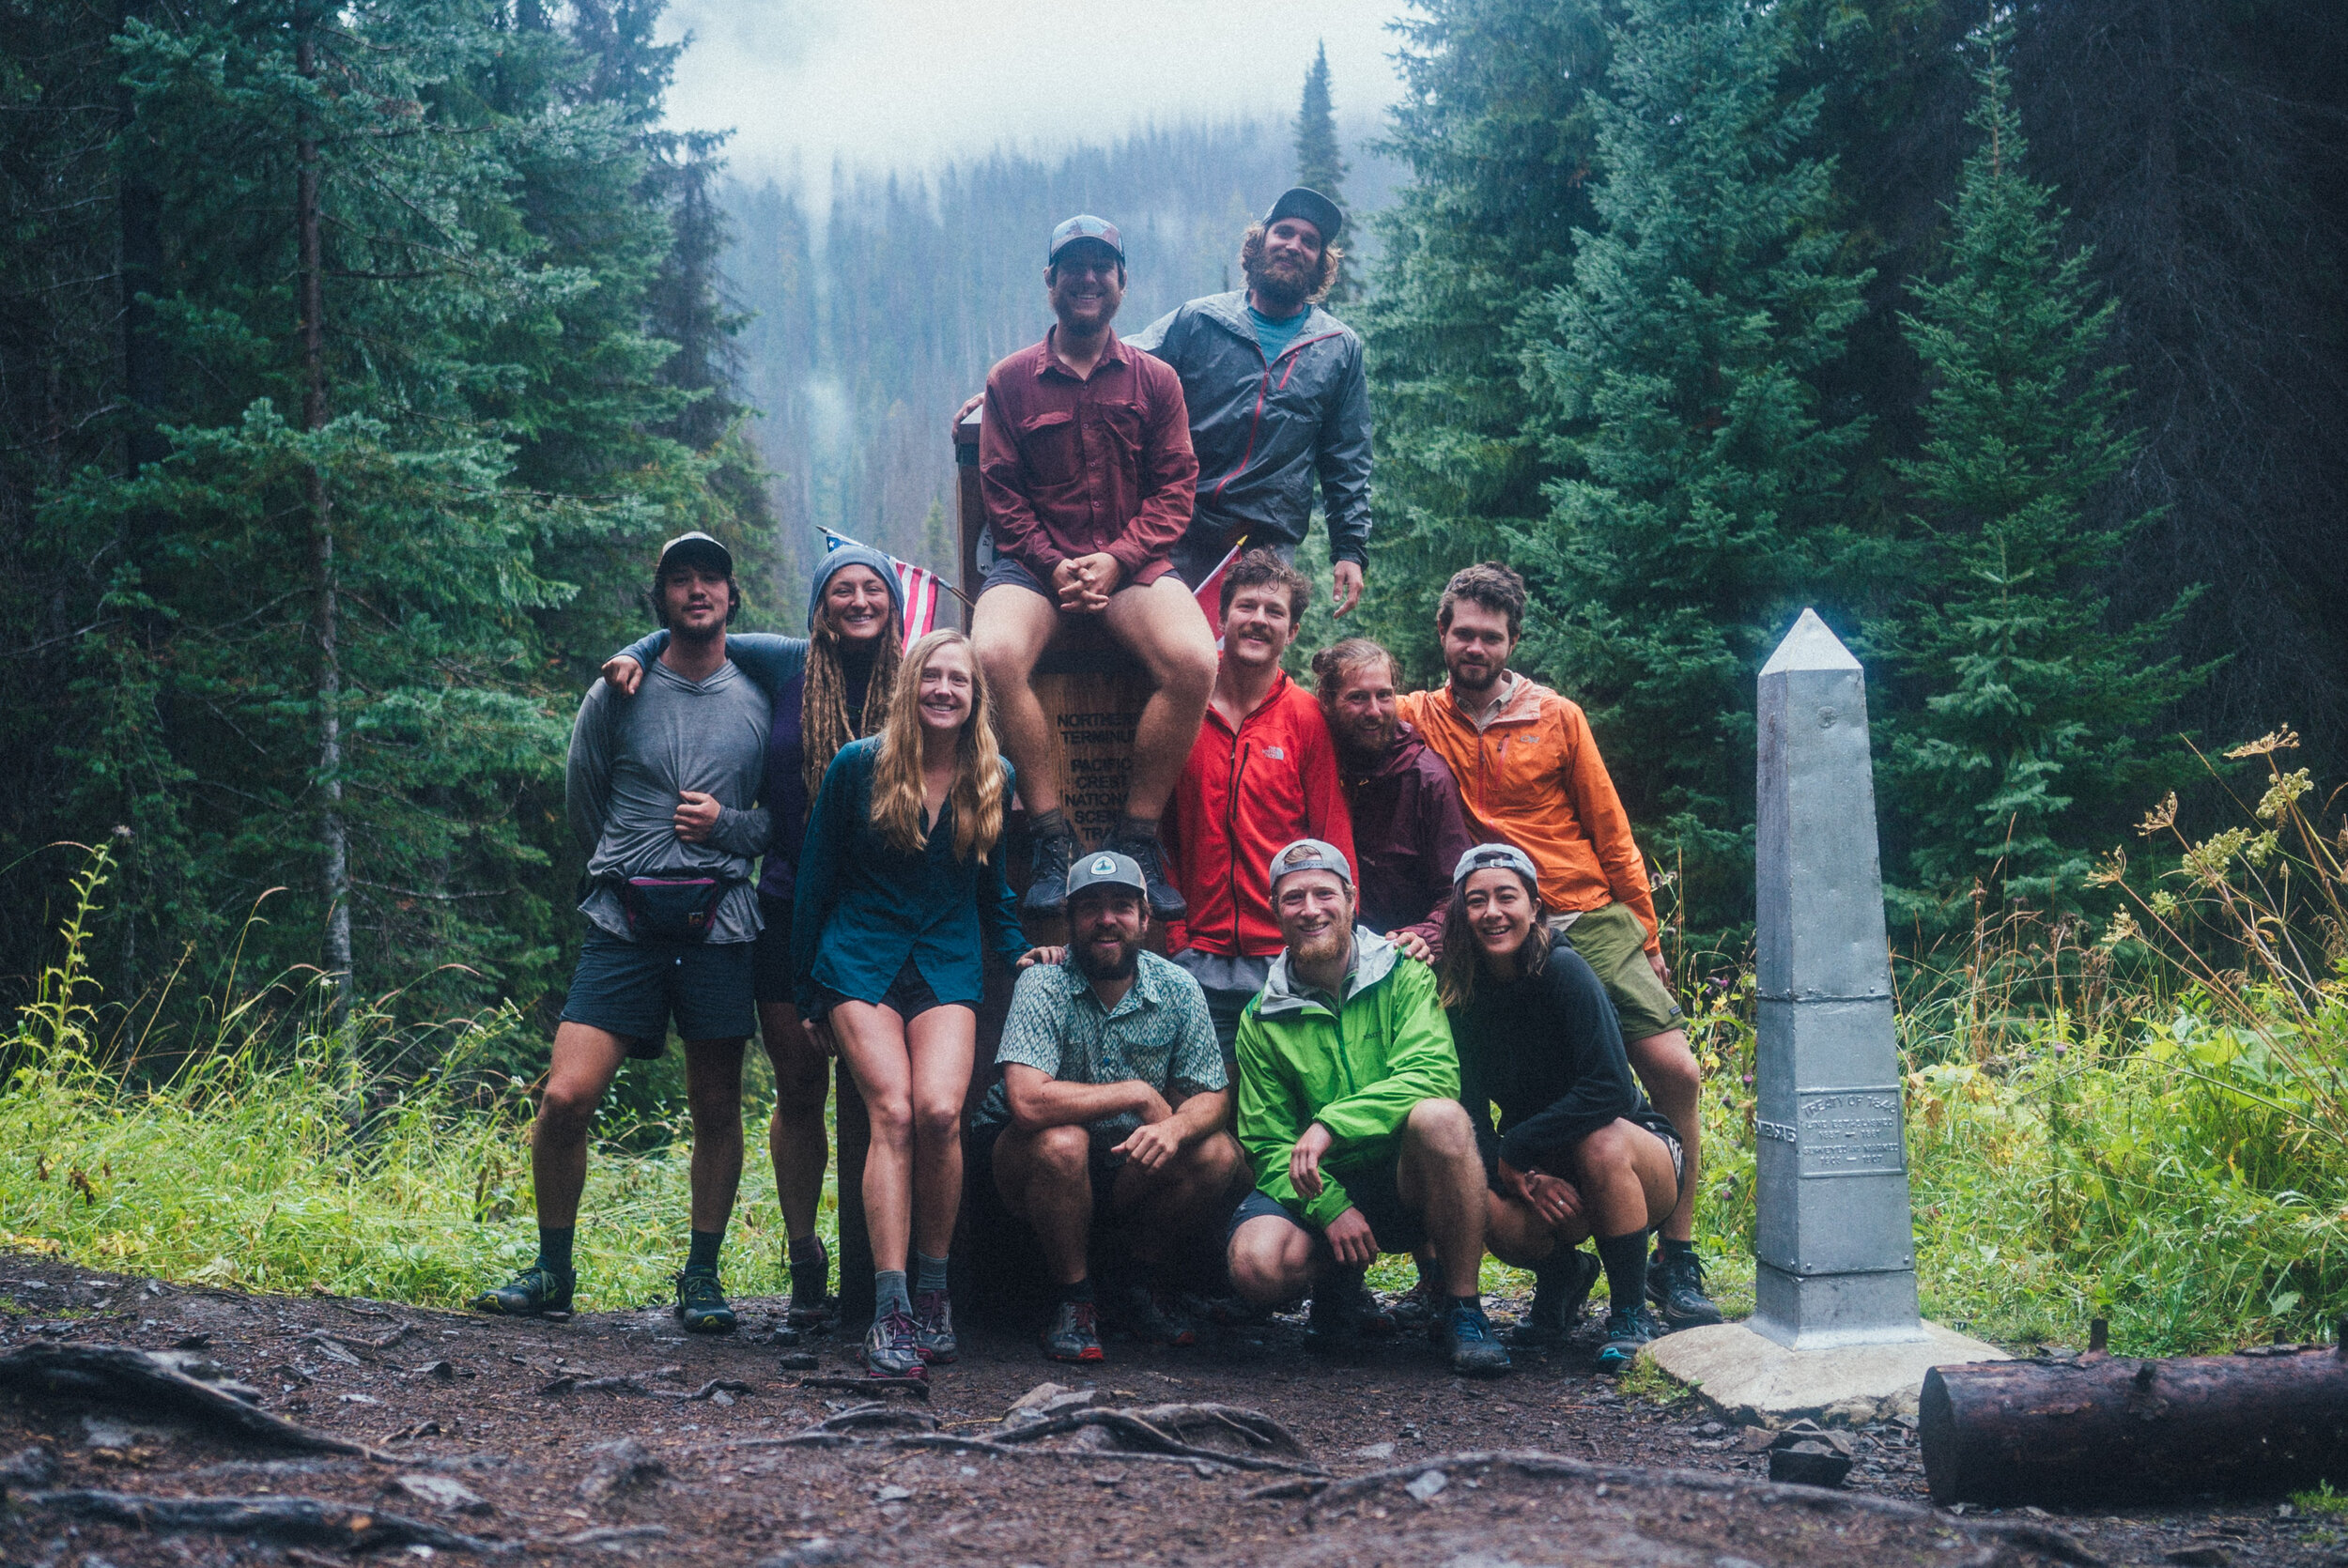 Elina with her trail family at the finish line of the PCT